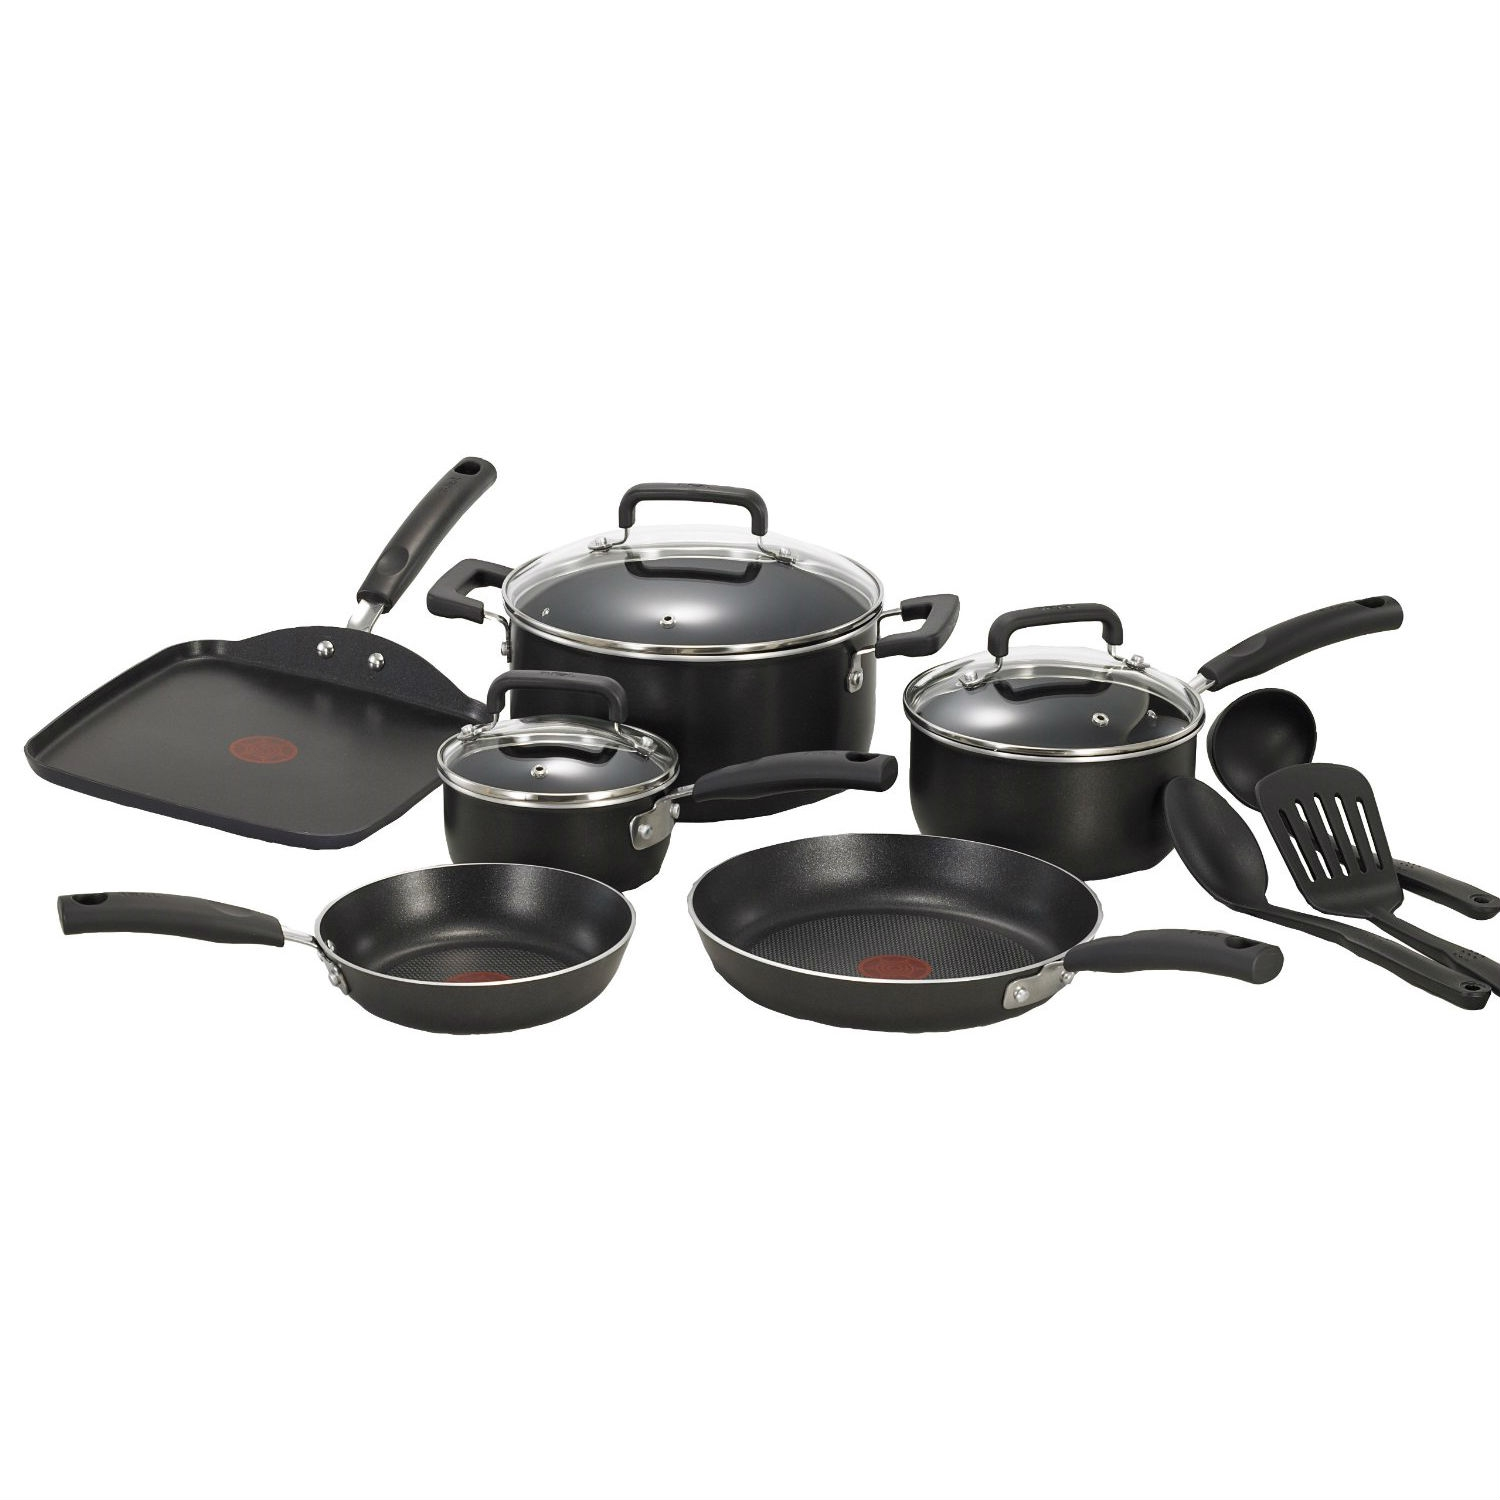 this 12piece nonstick dishwasher safe cookware set in black would be a great addition